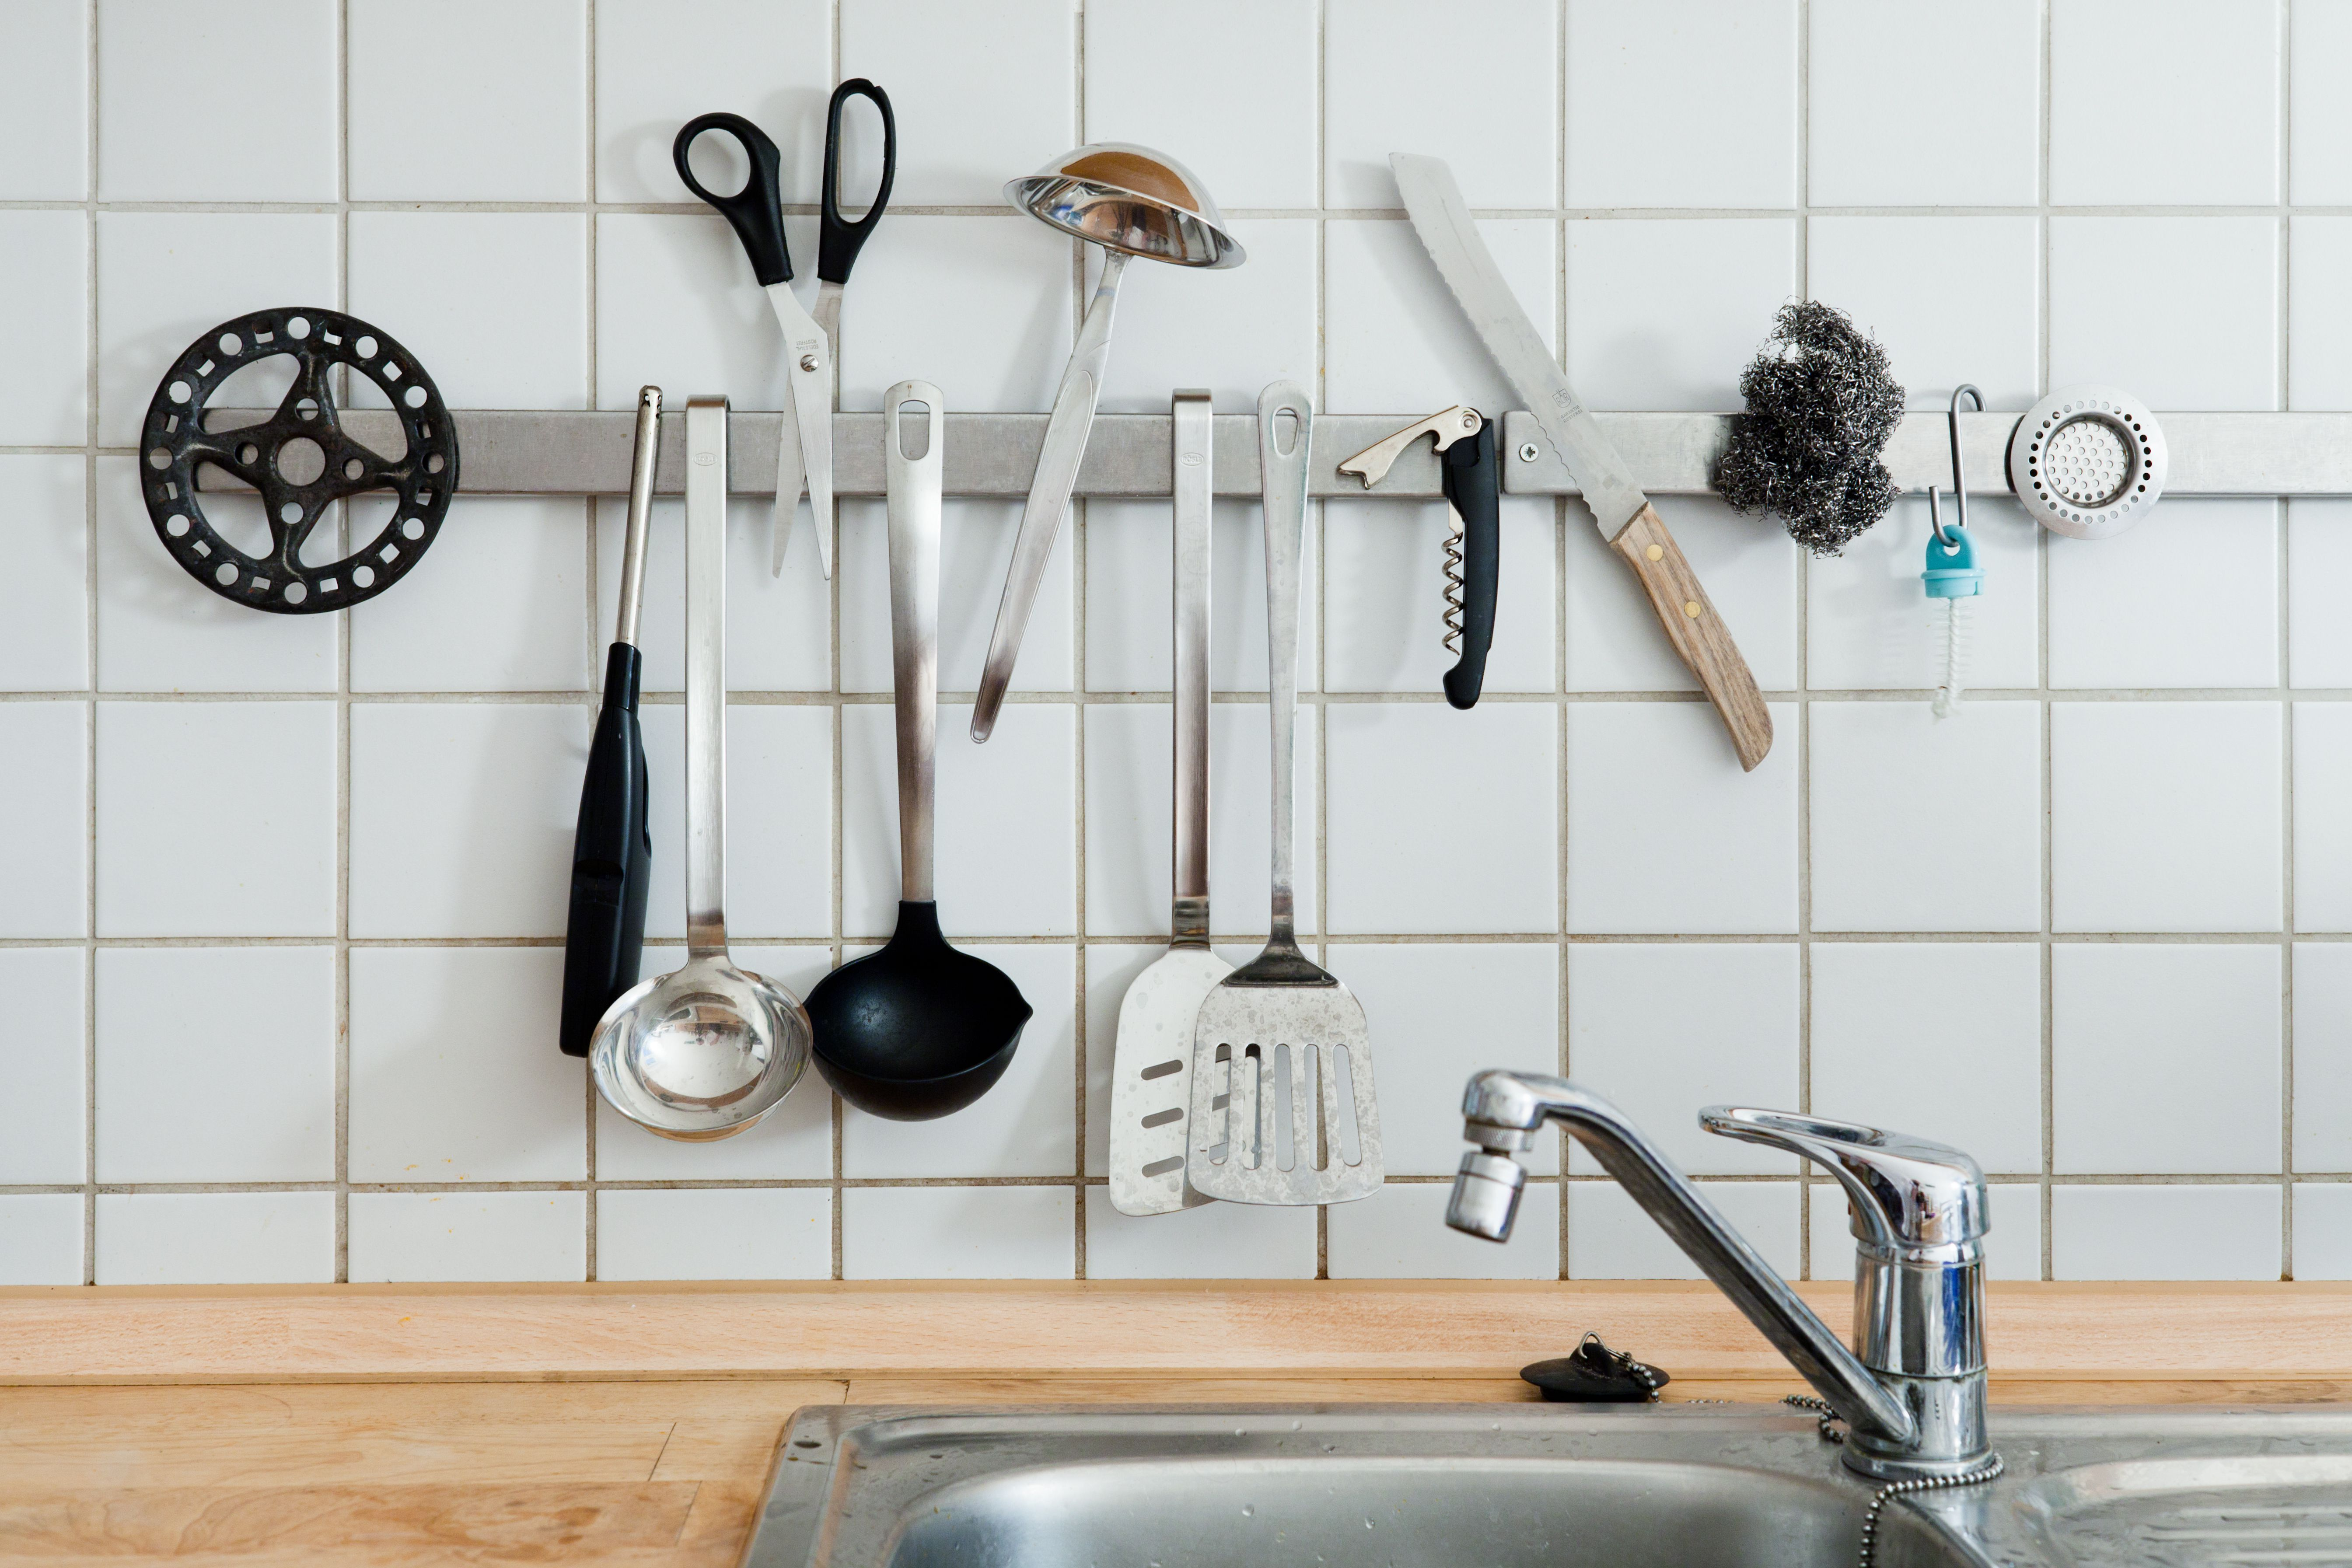 The Best Kitchen Tools to Buy for a First Kitchen